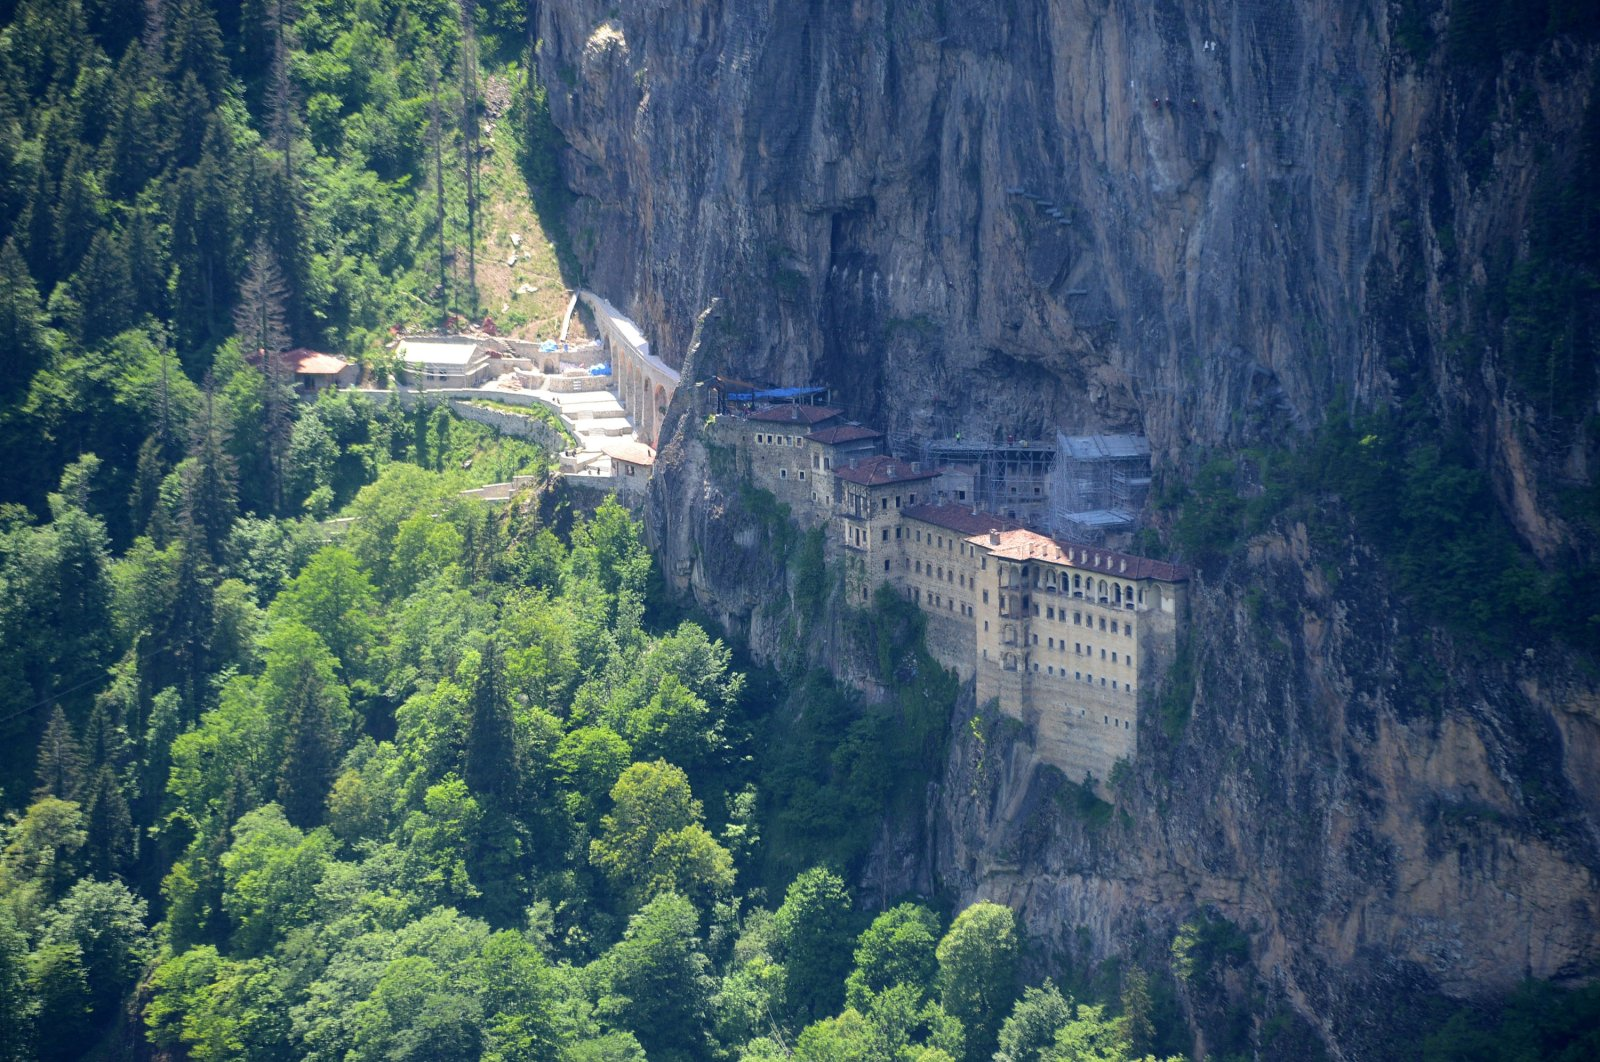 The Sümela Monastery in the Maçka district of northern Trabzon province, Turkey, July 27, 2020. (DHA Photo)